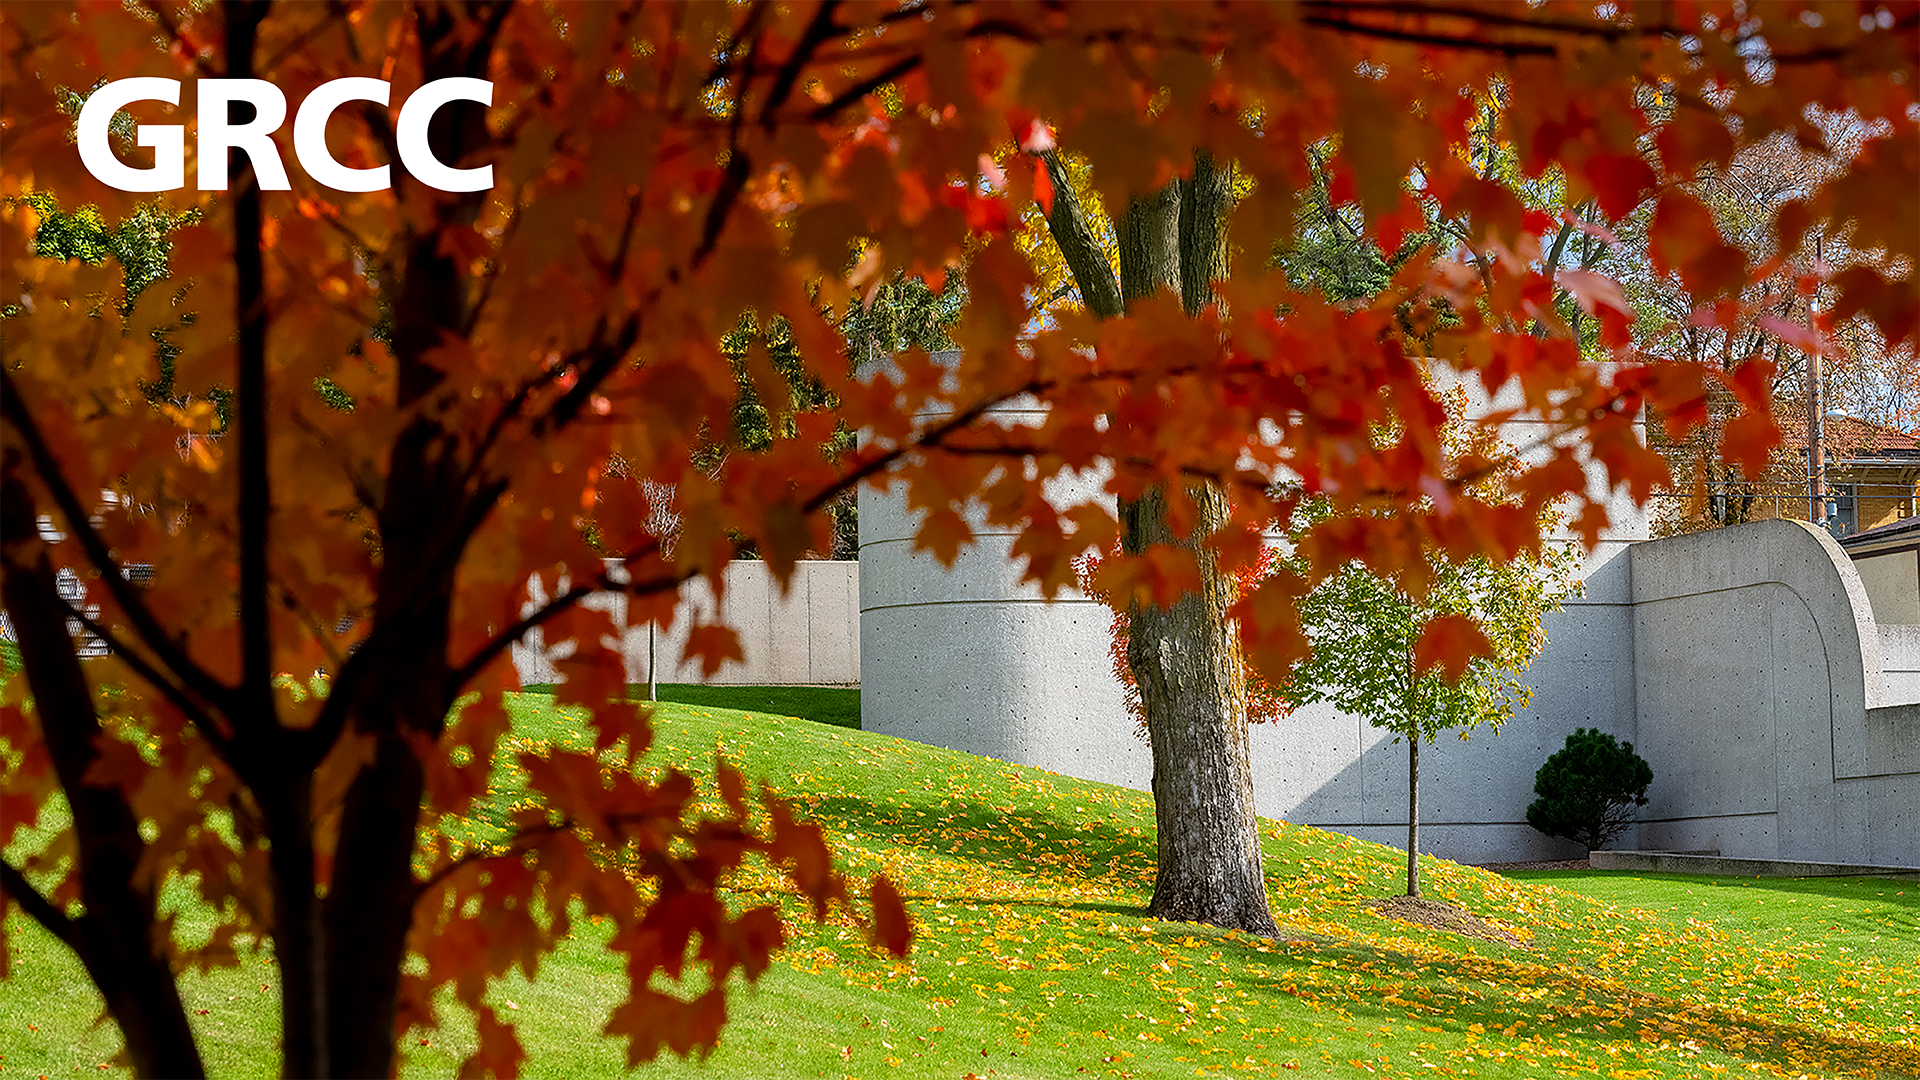 GRCC campus in the fall